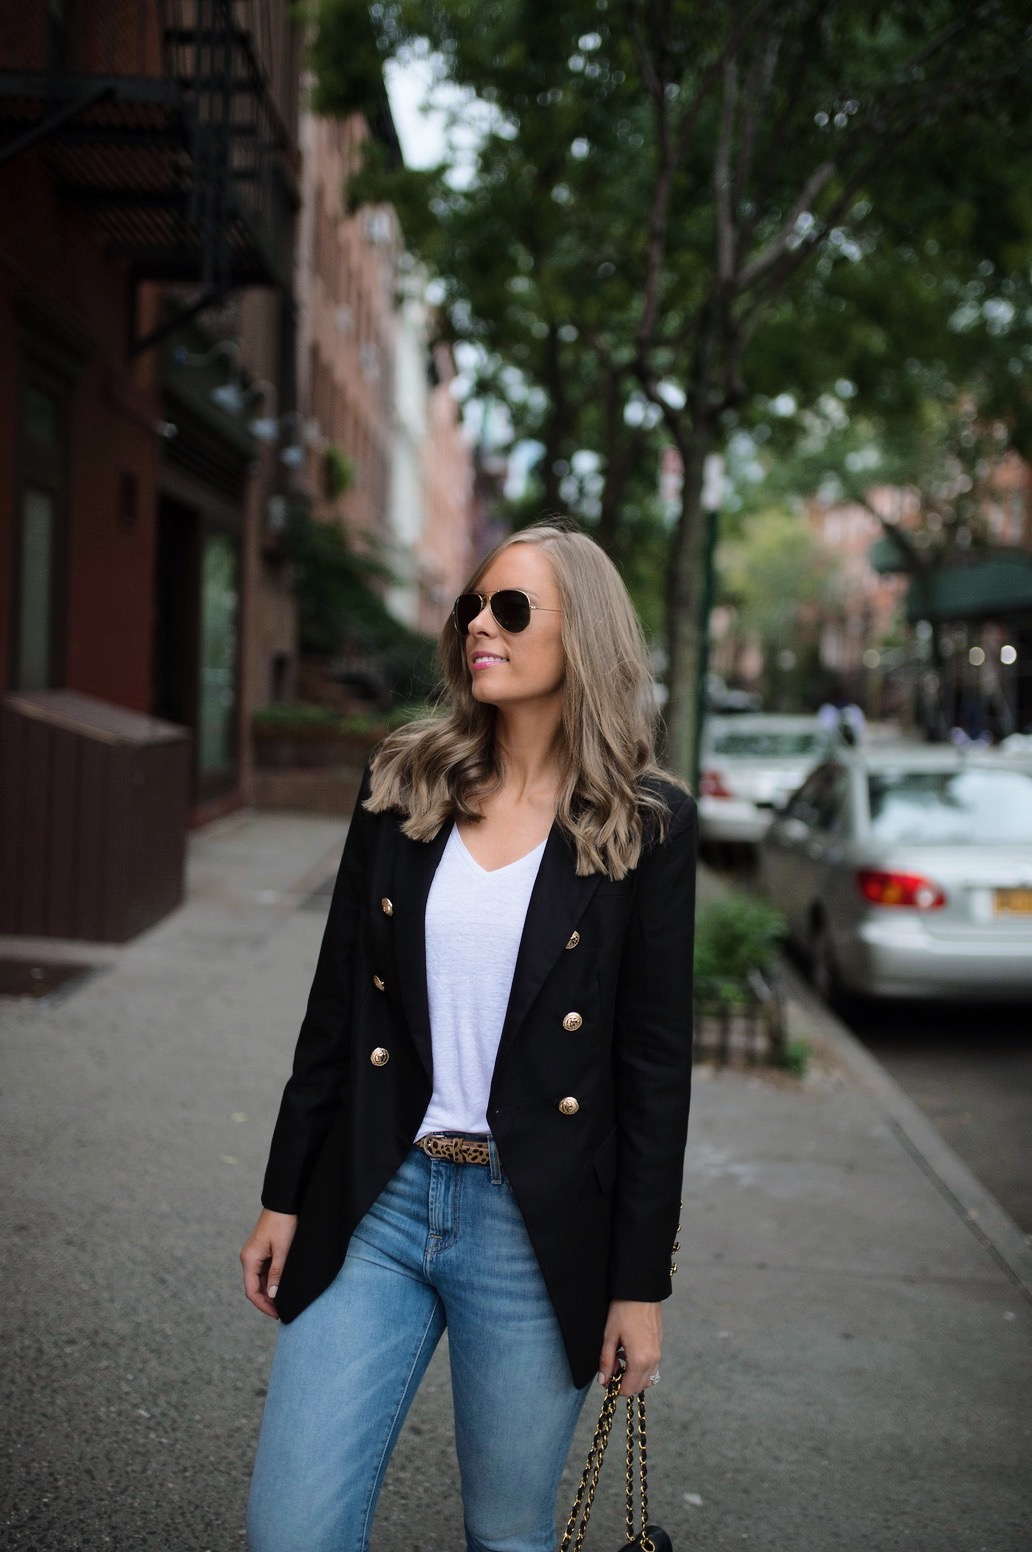 casual-outfit-ideas-blue-distressed-jeans-white-sneakers-balmain-blazer-chanel-bag-fashion-blogger-new-york-street-style-outfit-lauren-slade-style-elixir-blog-3